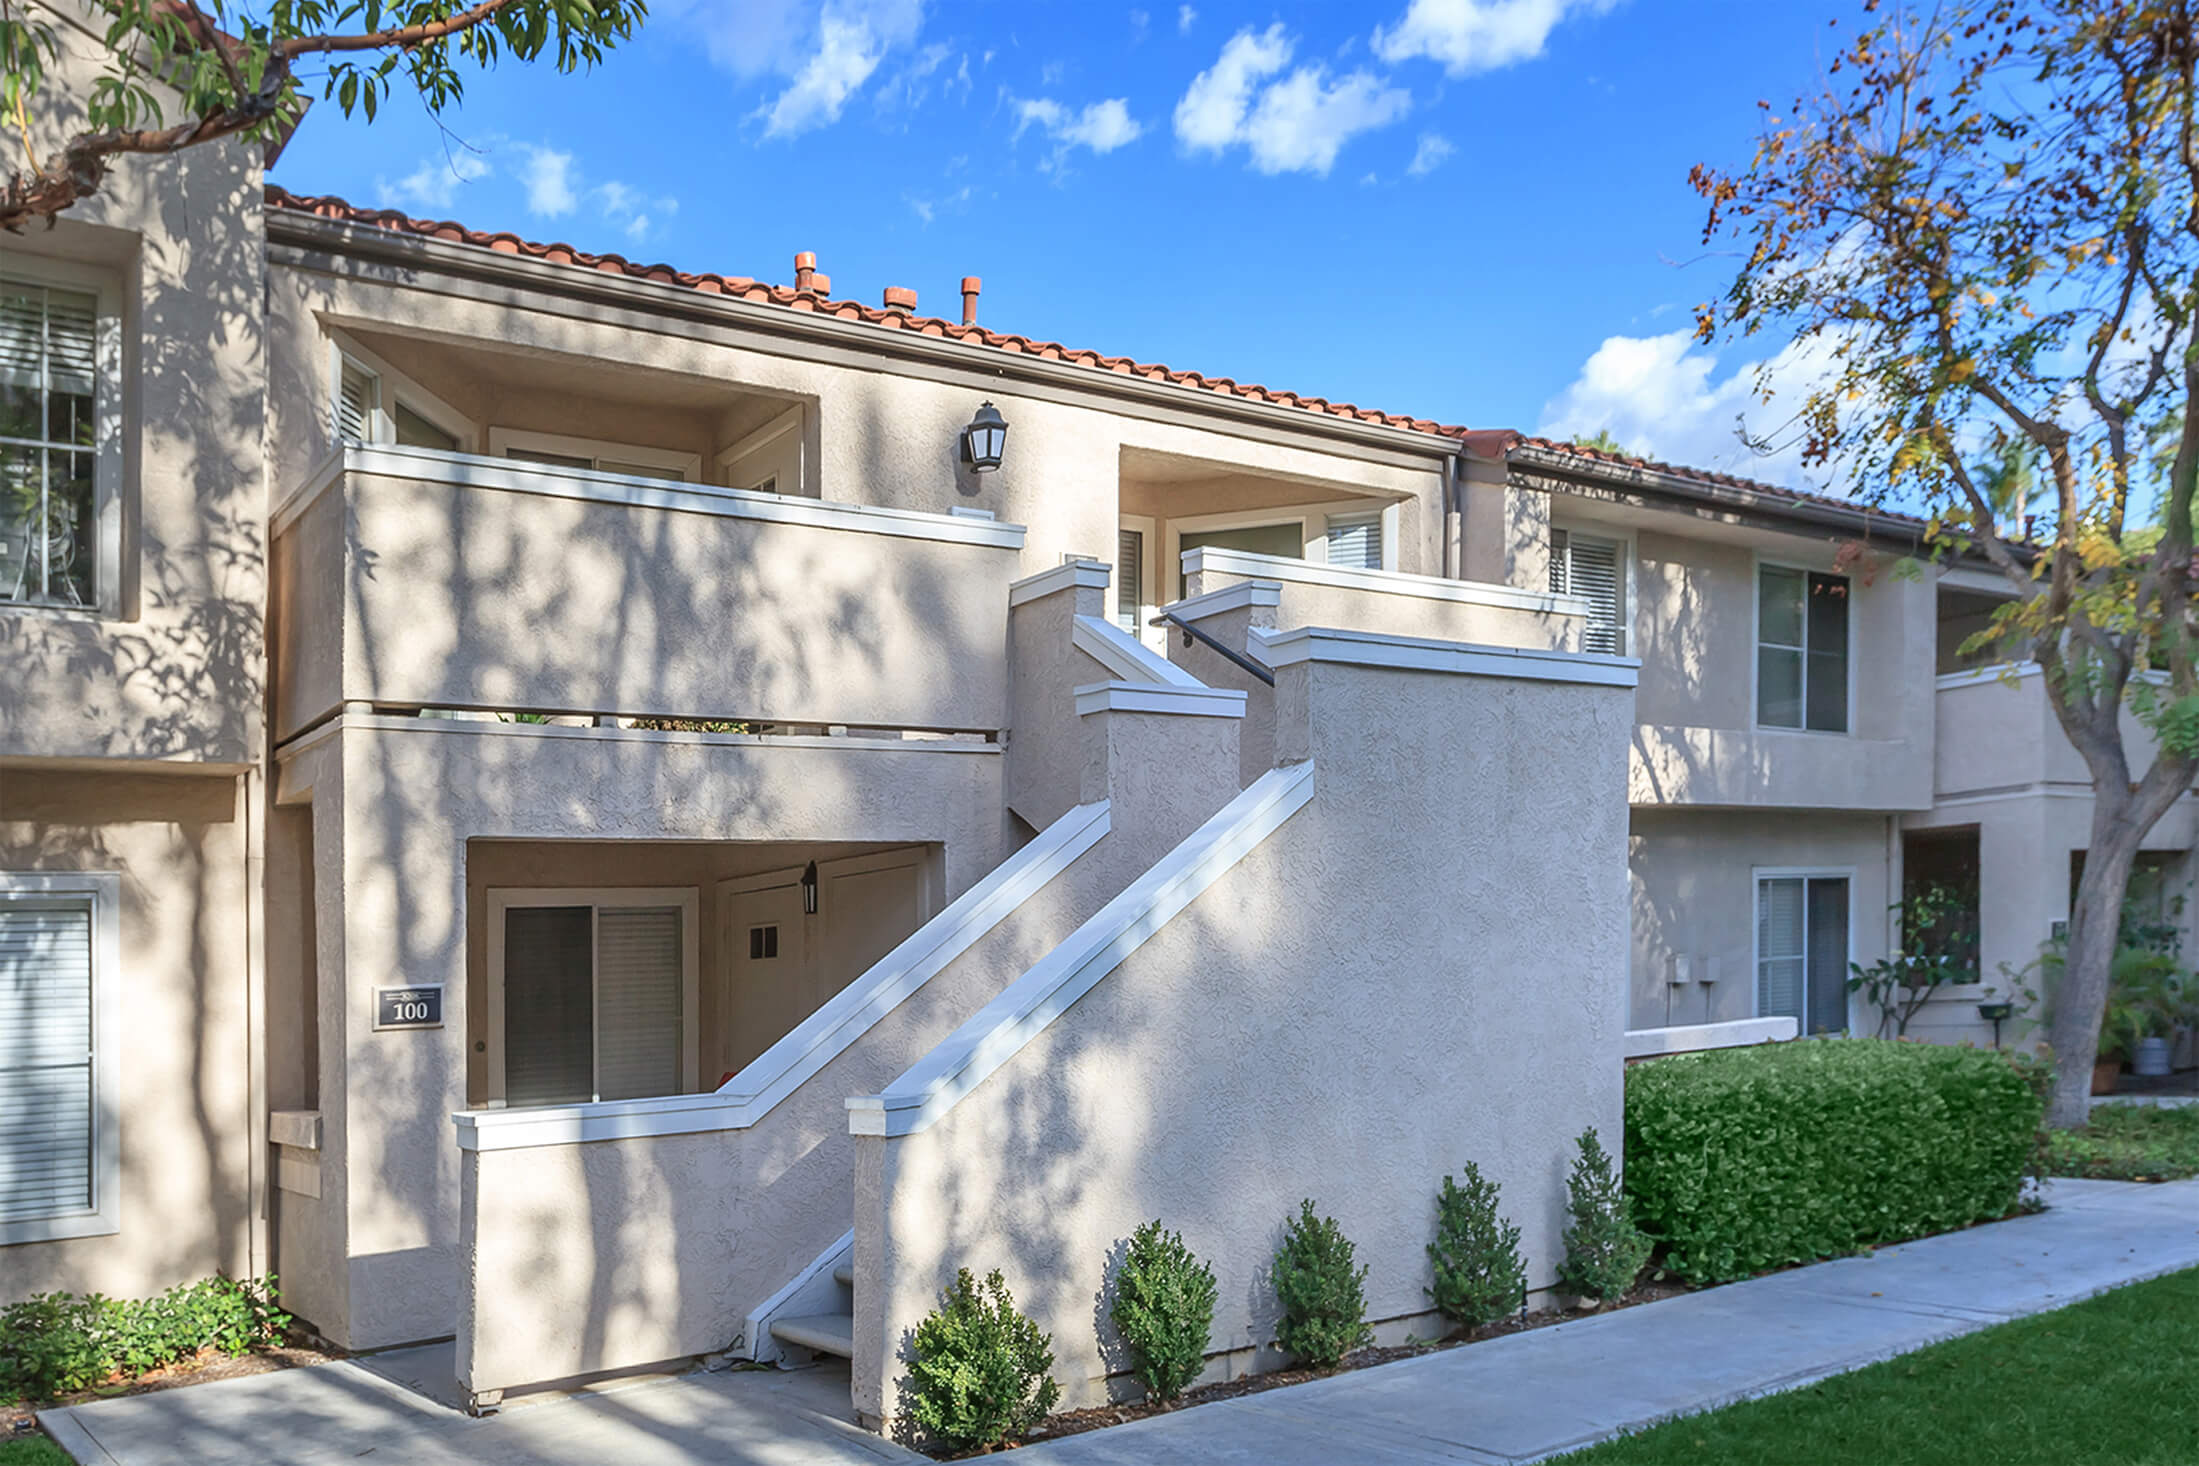 Sycamore Canyon Apartment Homes Apartments In Anaheim Hills Ca